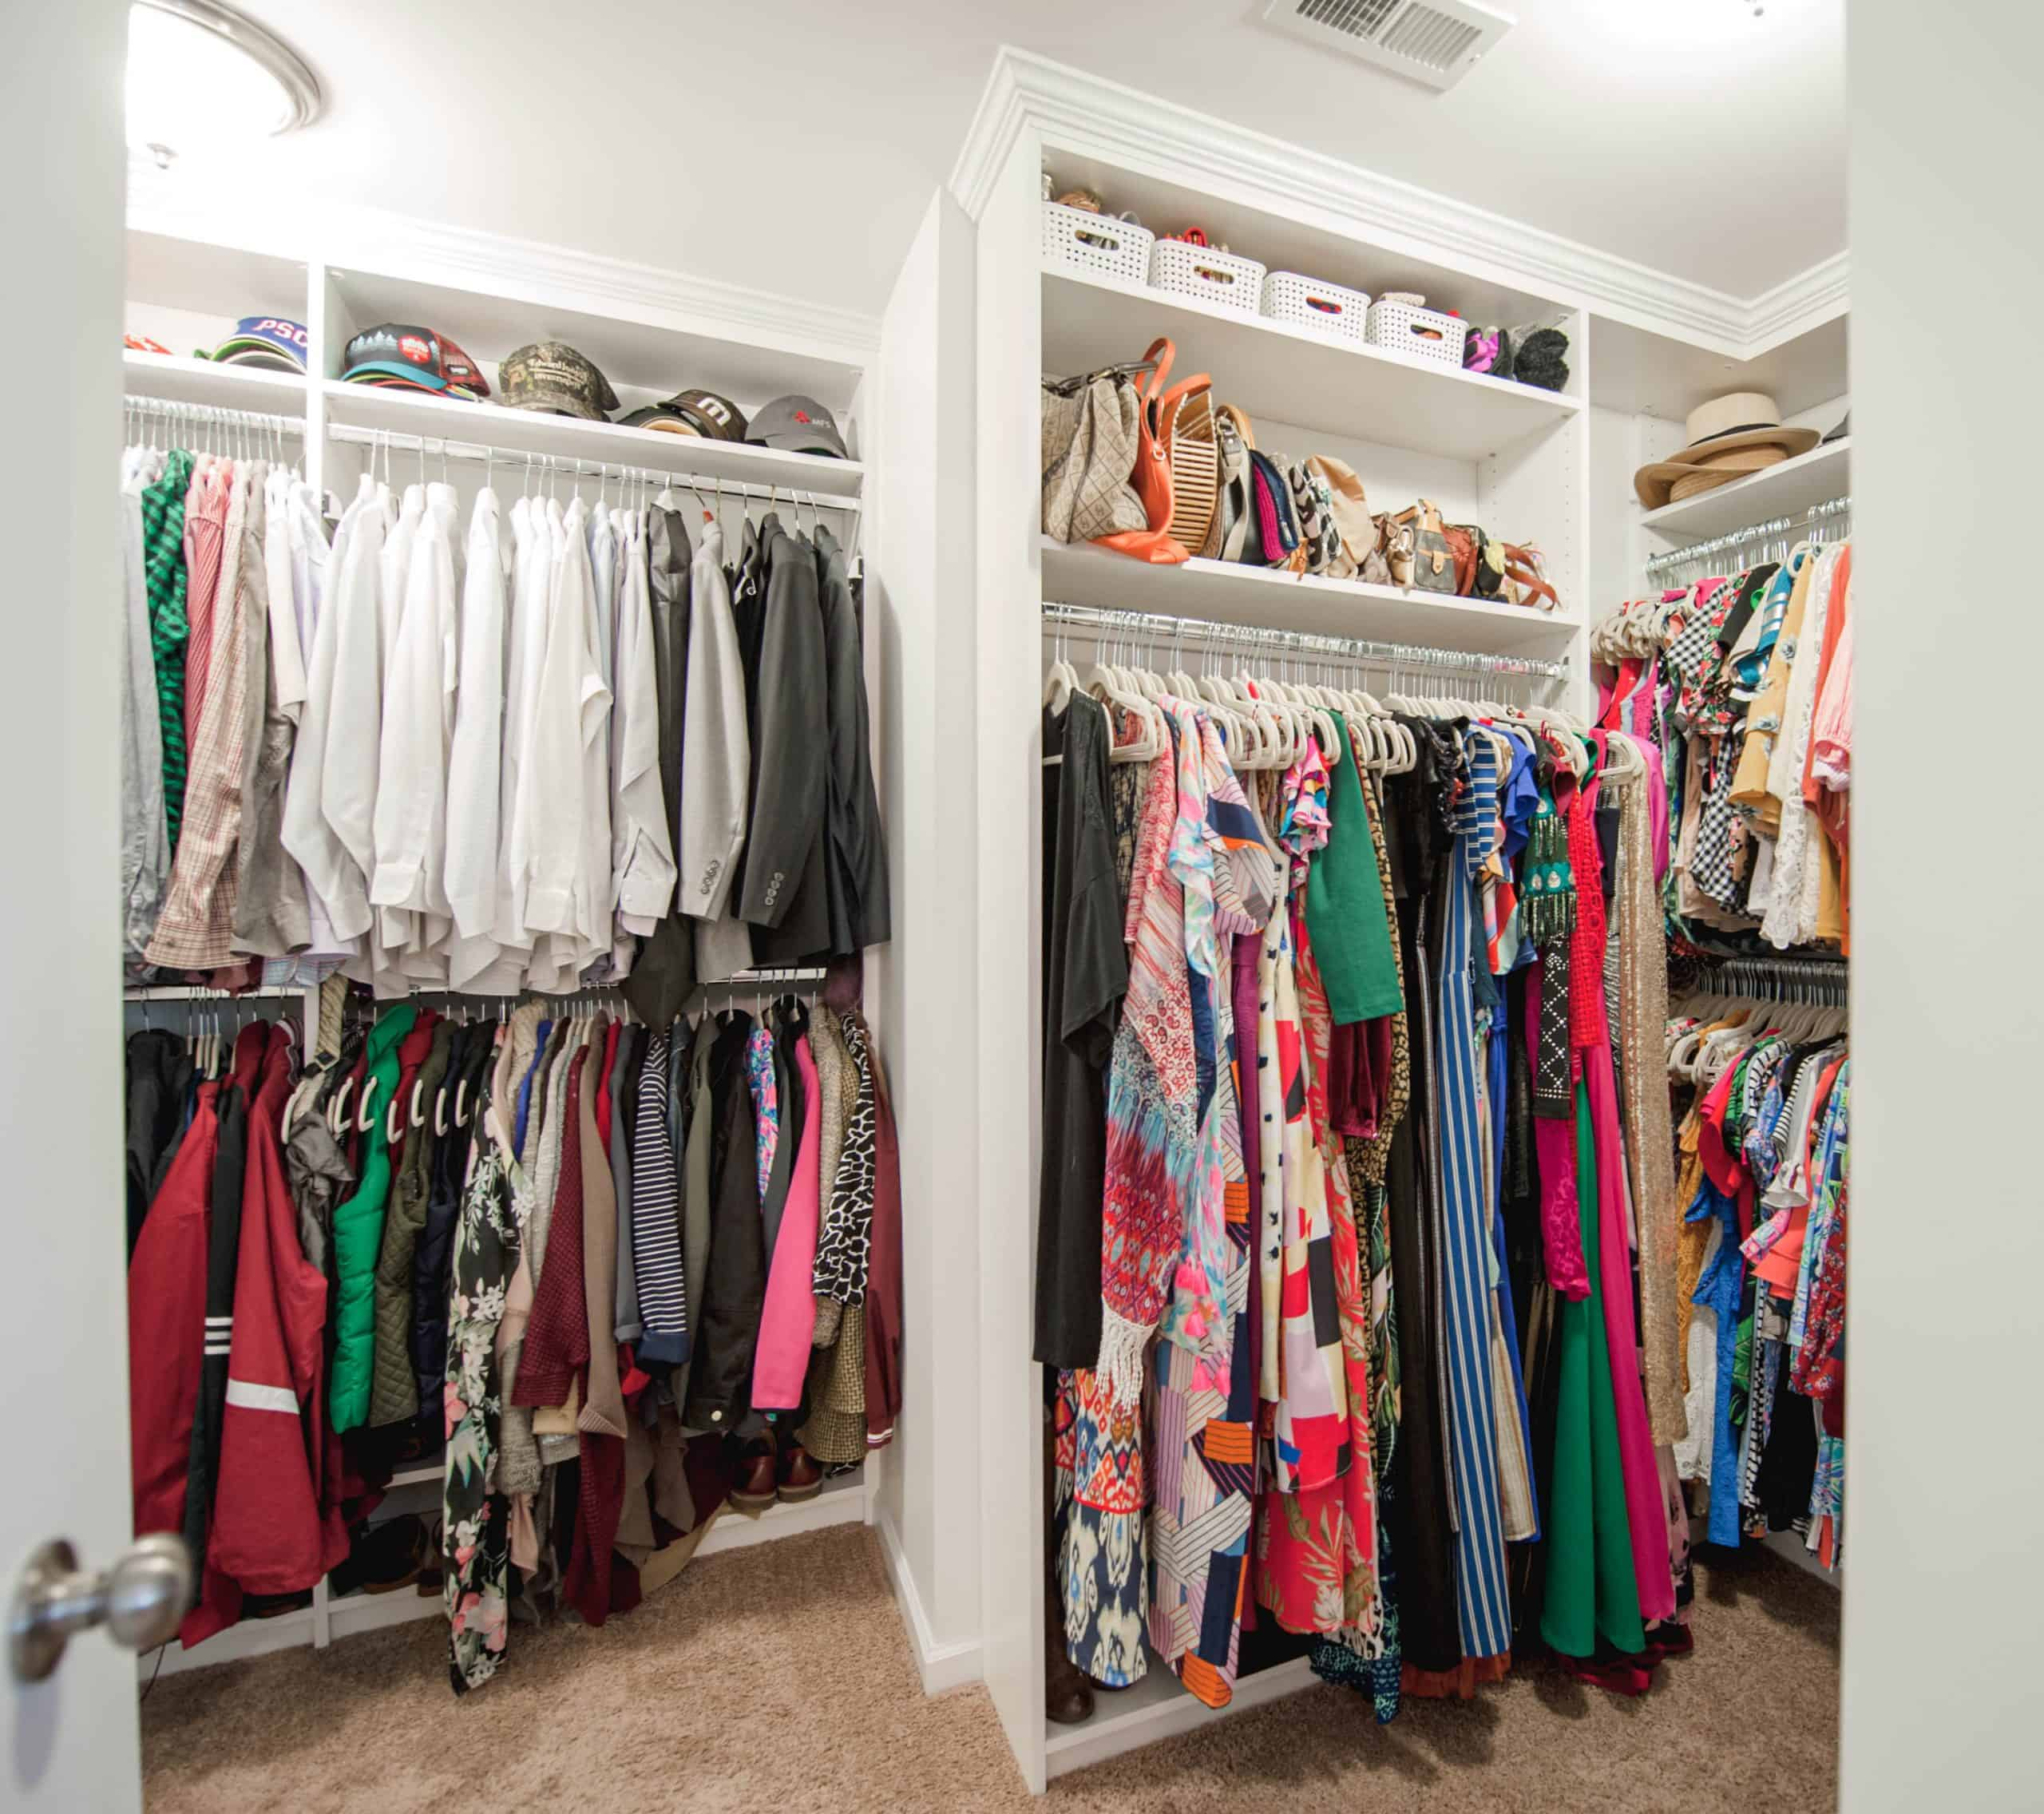 An organized custom closet from Closets by Design.